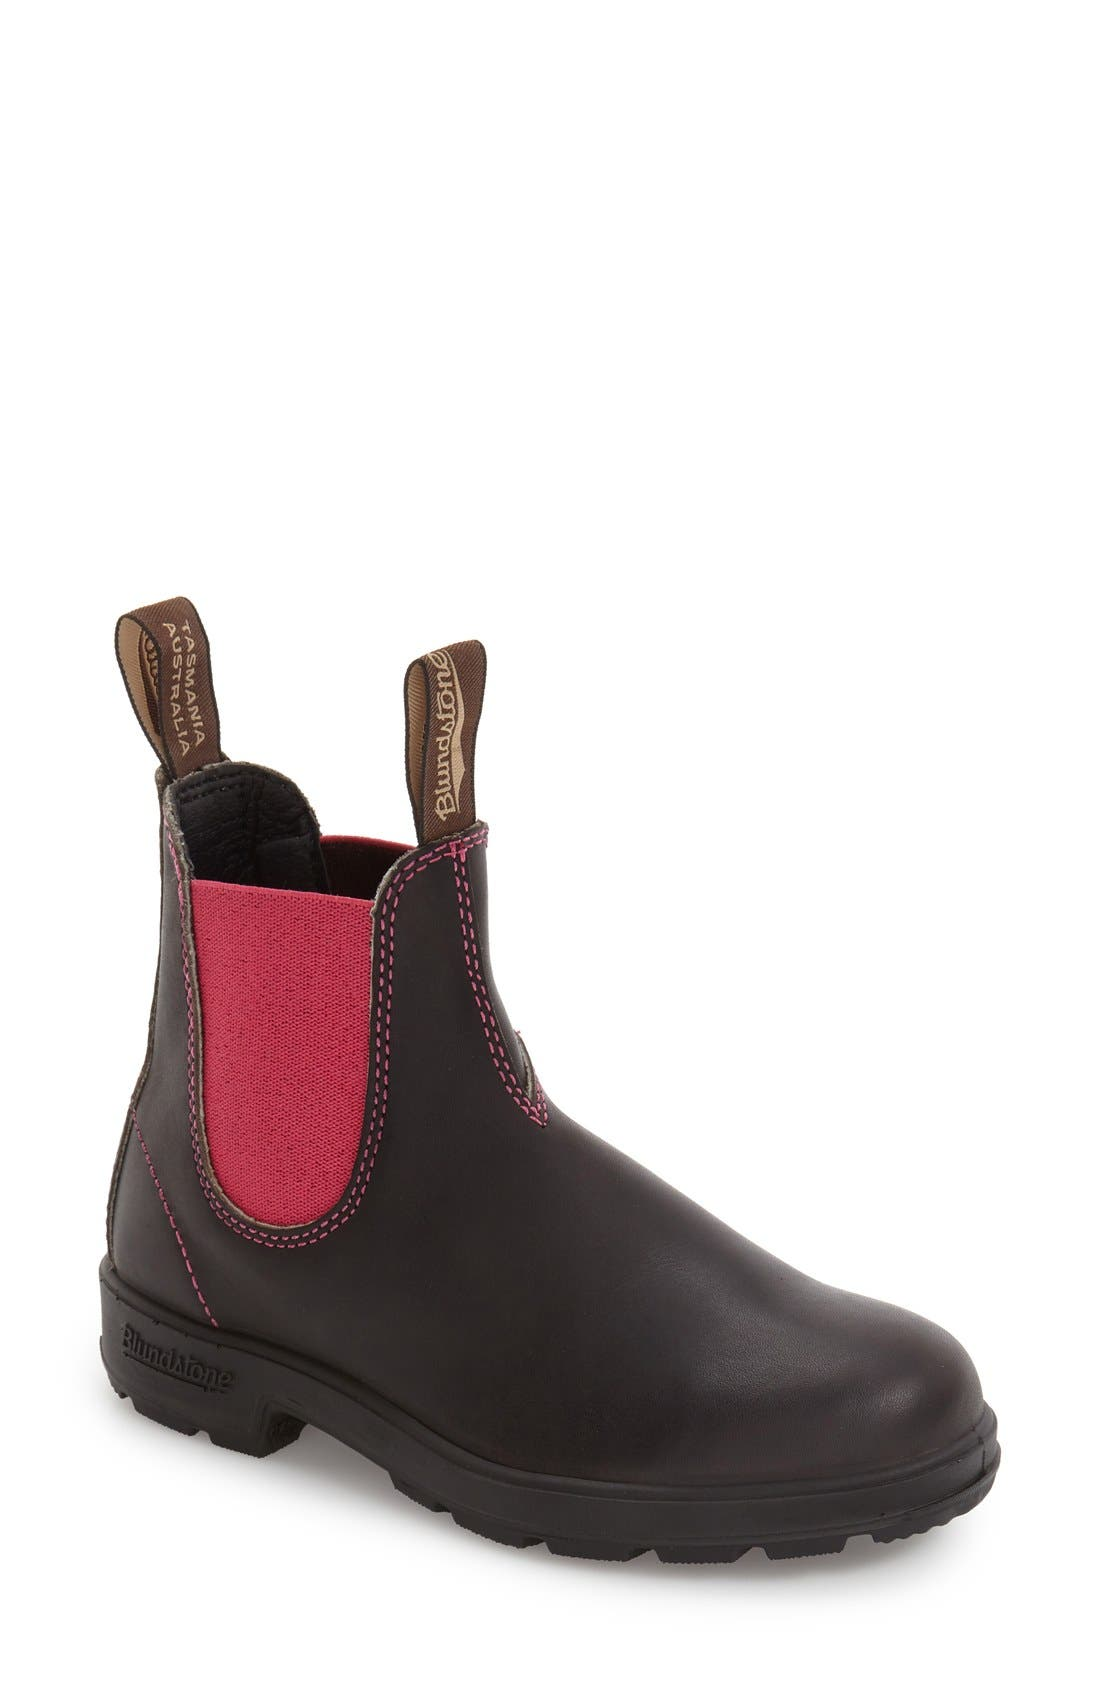 Blundstone Footwear 'Original - 500 Series' Water Resistant Chelsea Boot (Women)